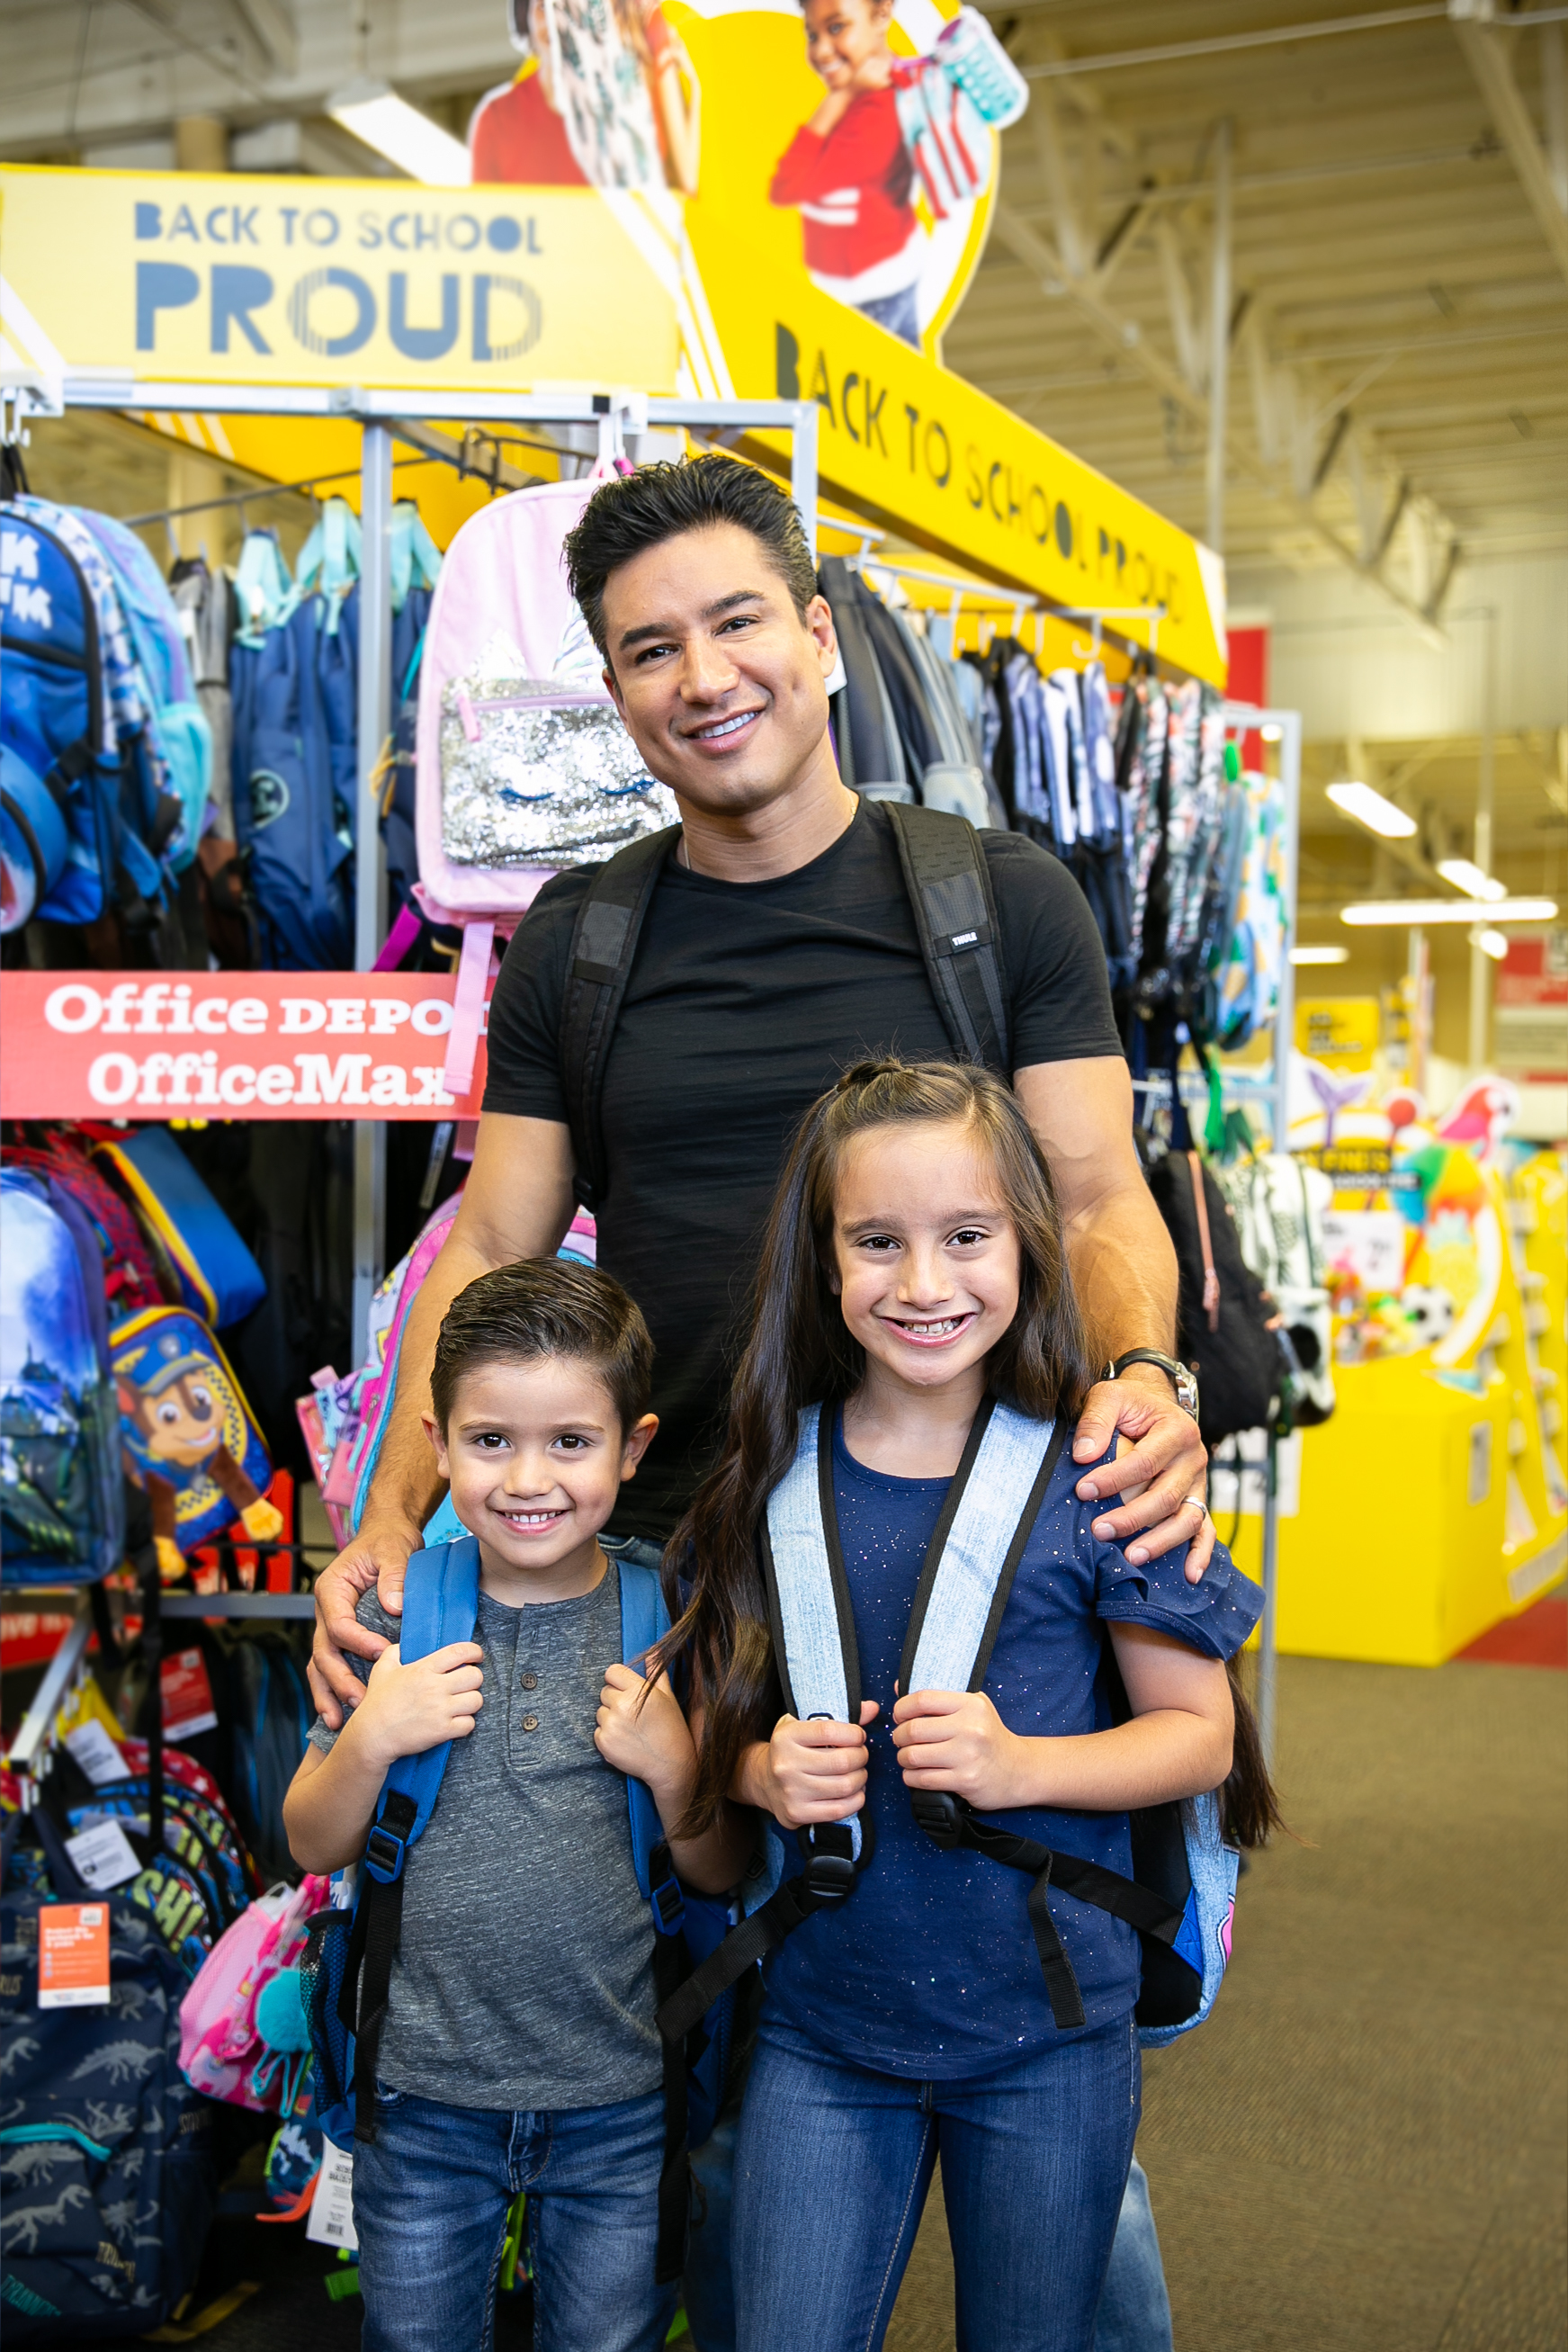 Office Depot Launches Back To School Proud Campaign To Give